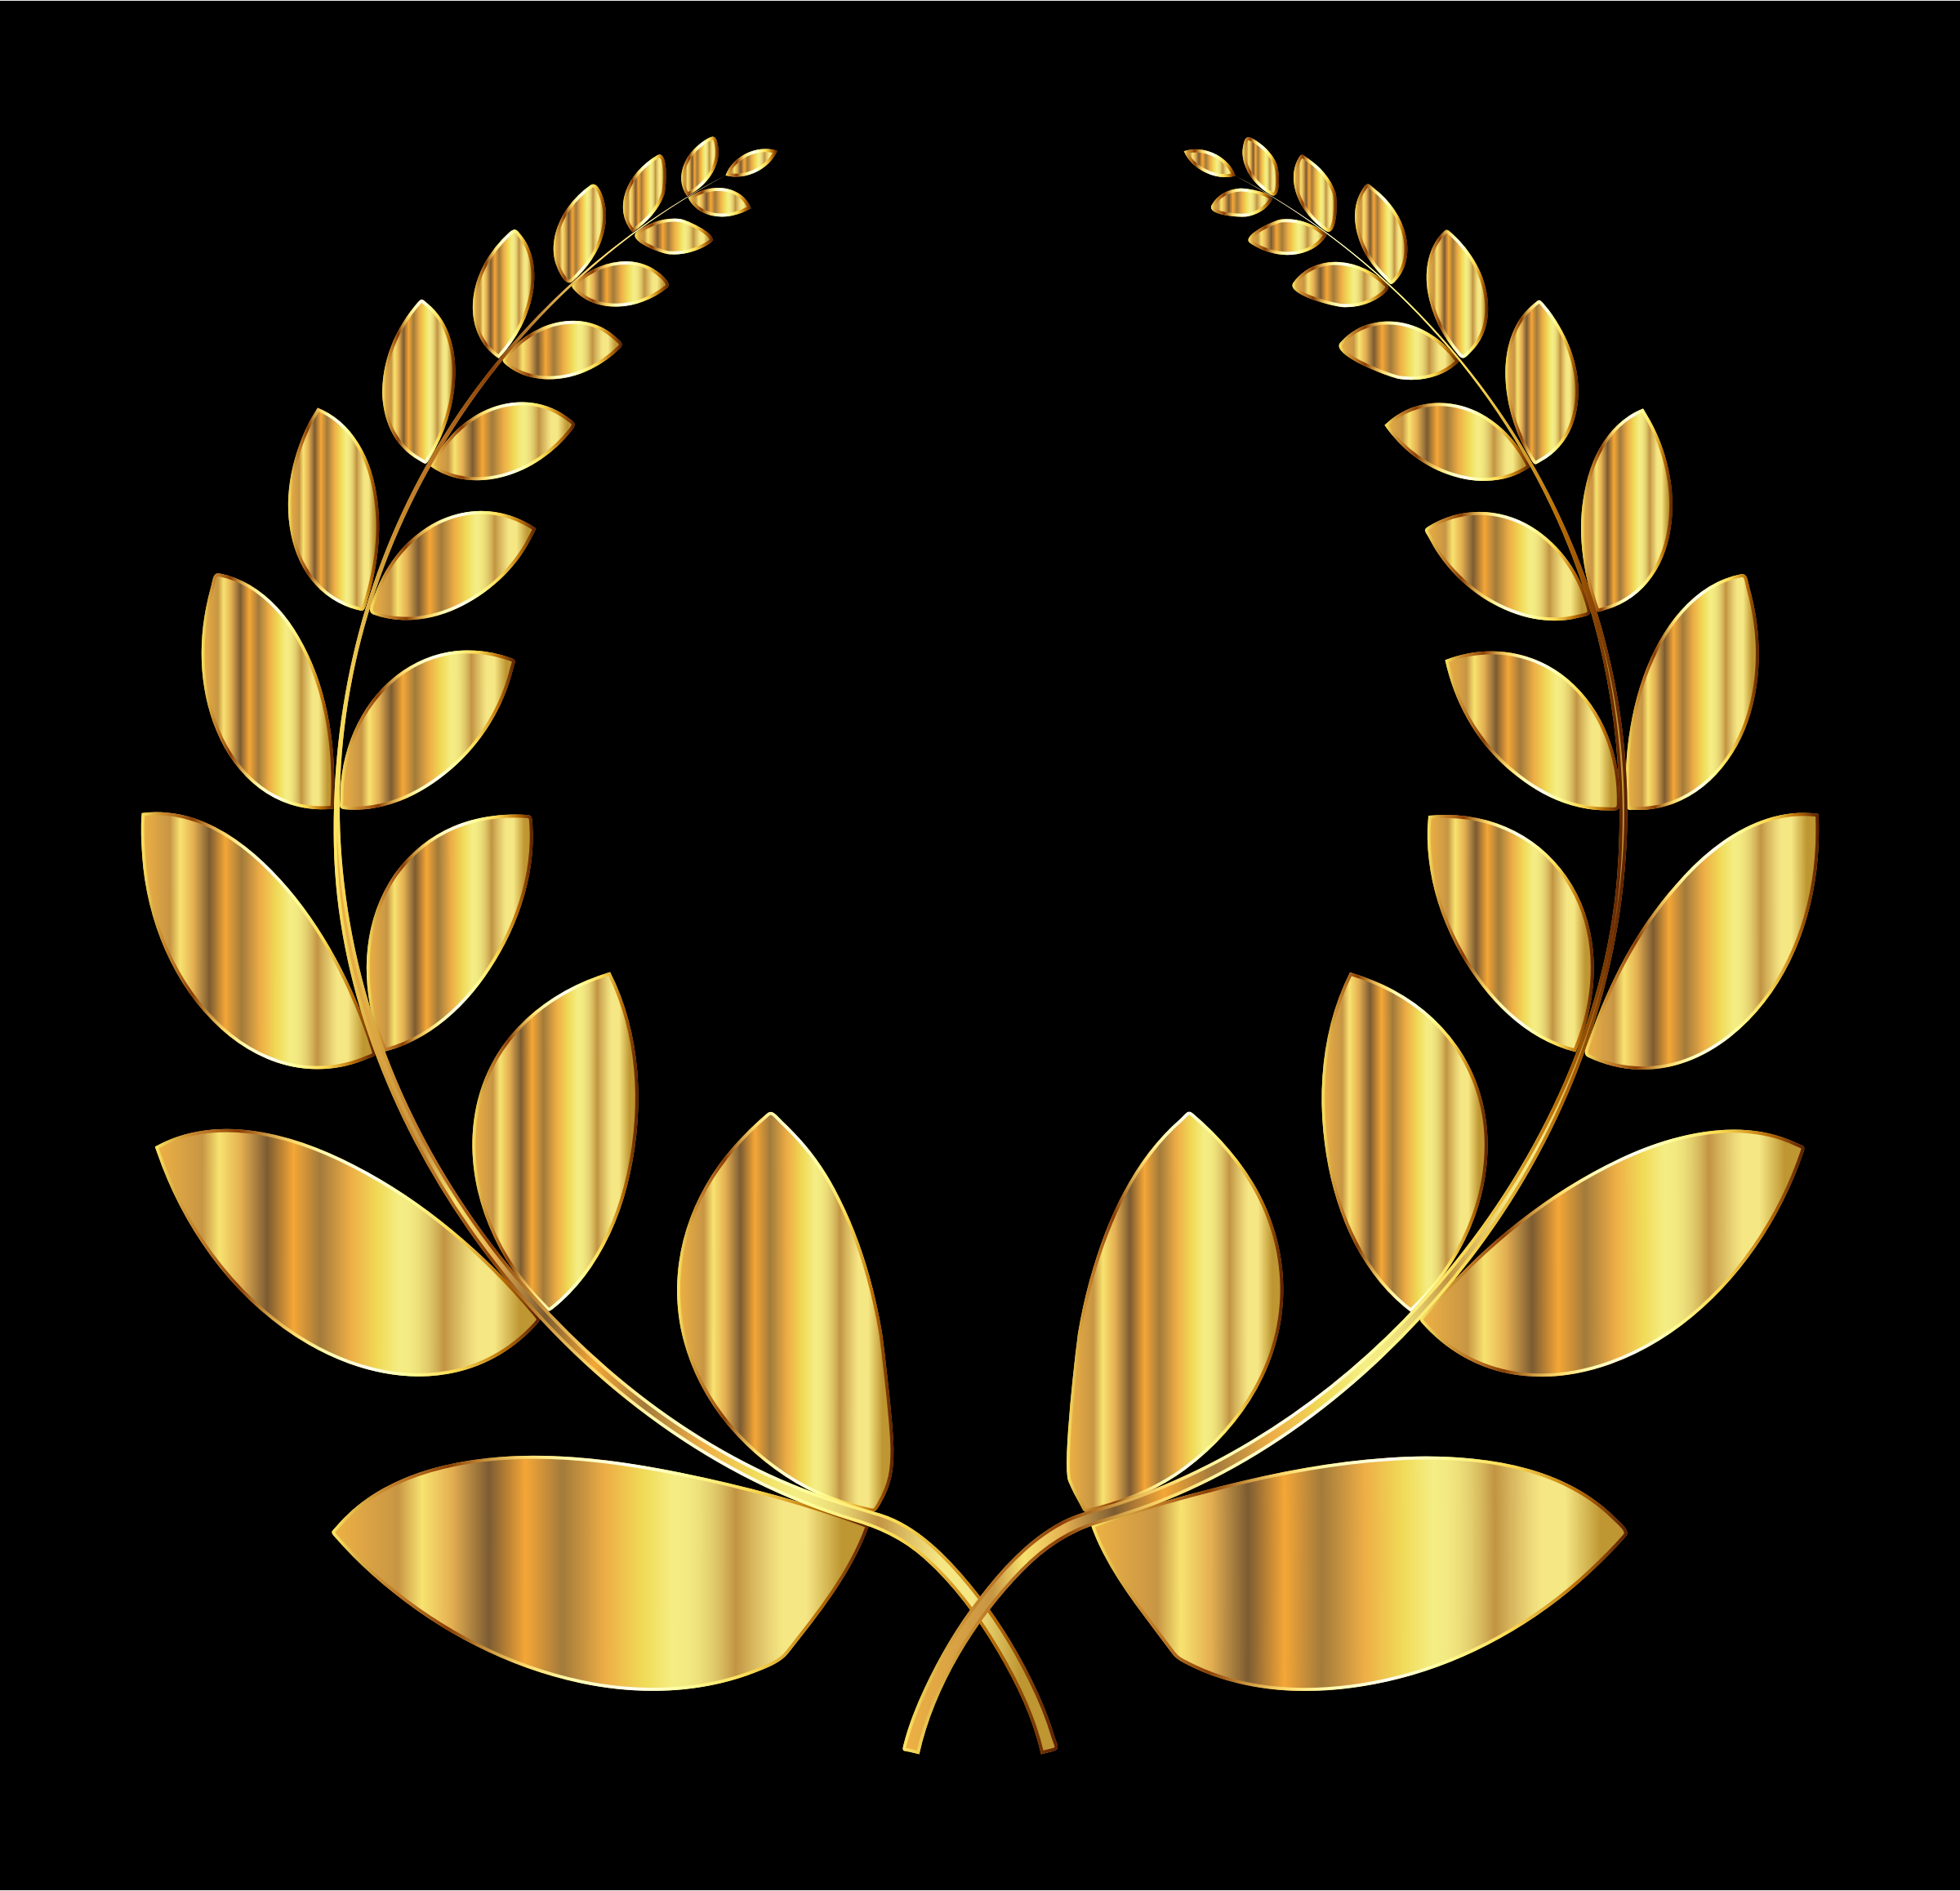 Gold Laurel Wreath 2 by GDJ